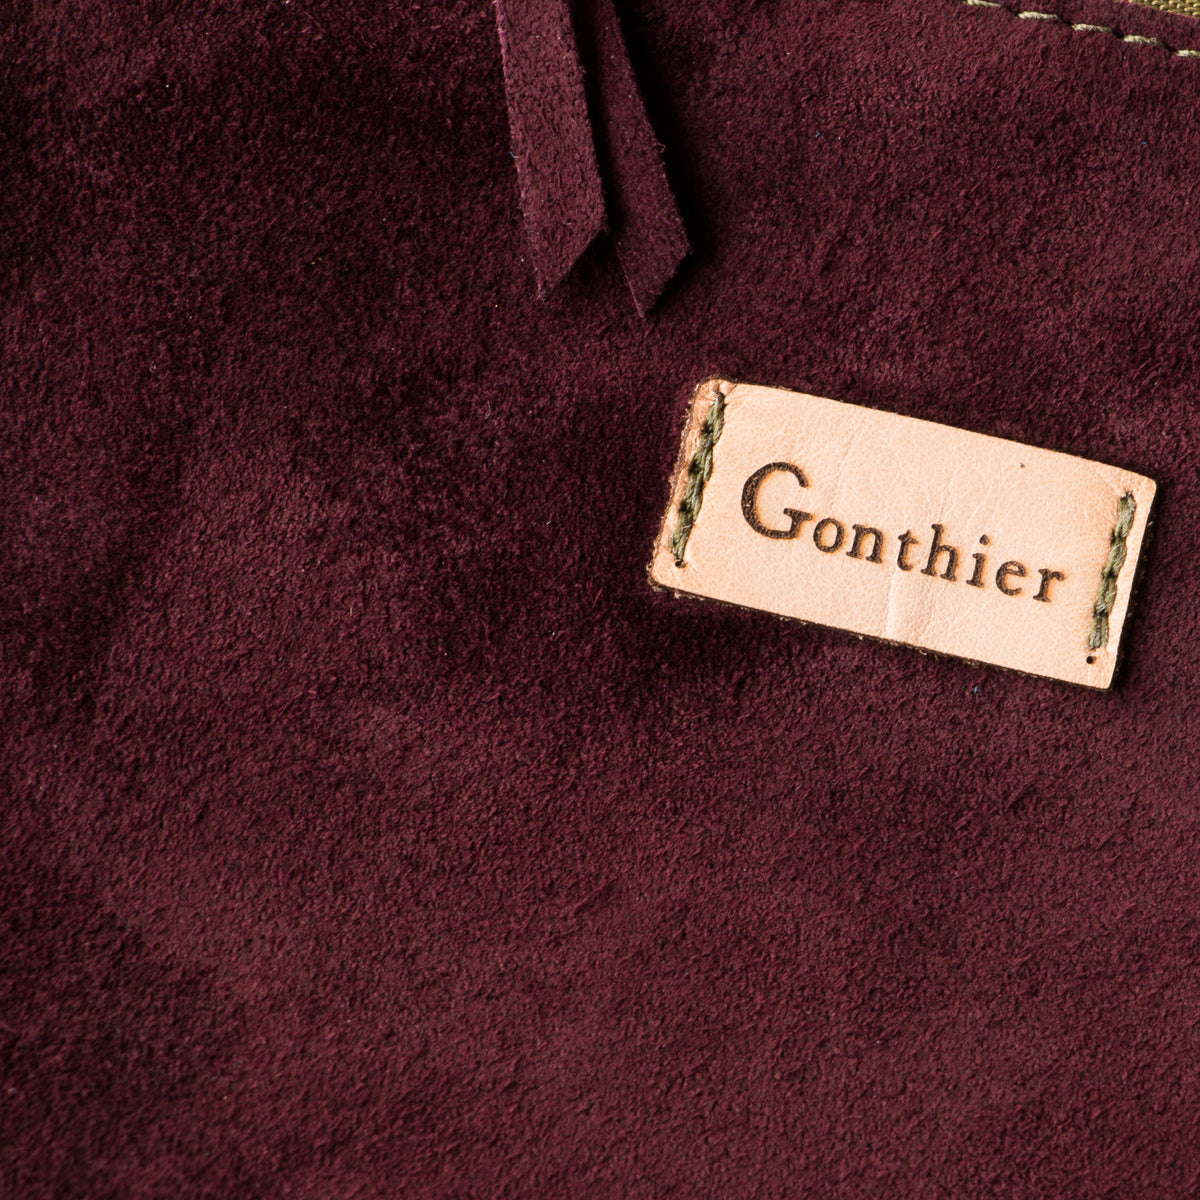 Suede Detail - Bordeaux & Khaki - Handmade Long Pouch in Suede Calfskin - Sold by Chic & Basta